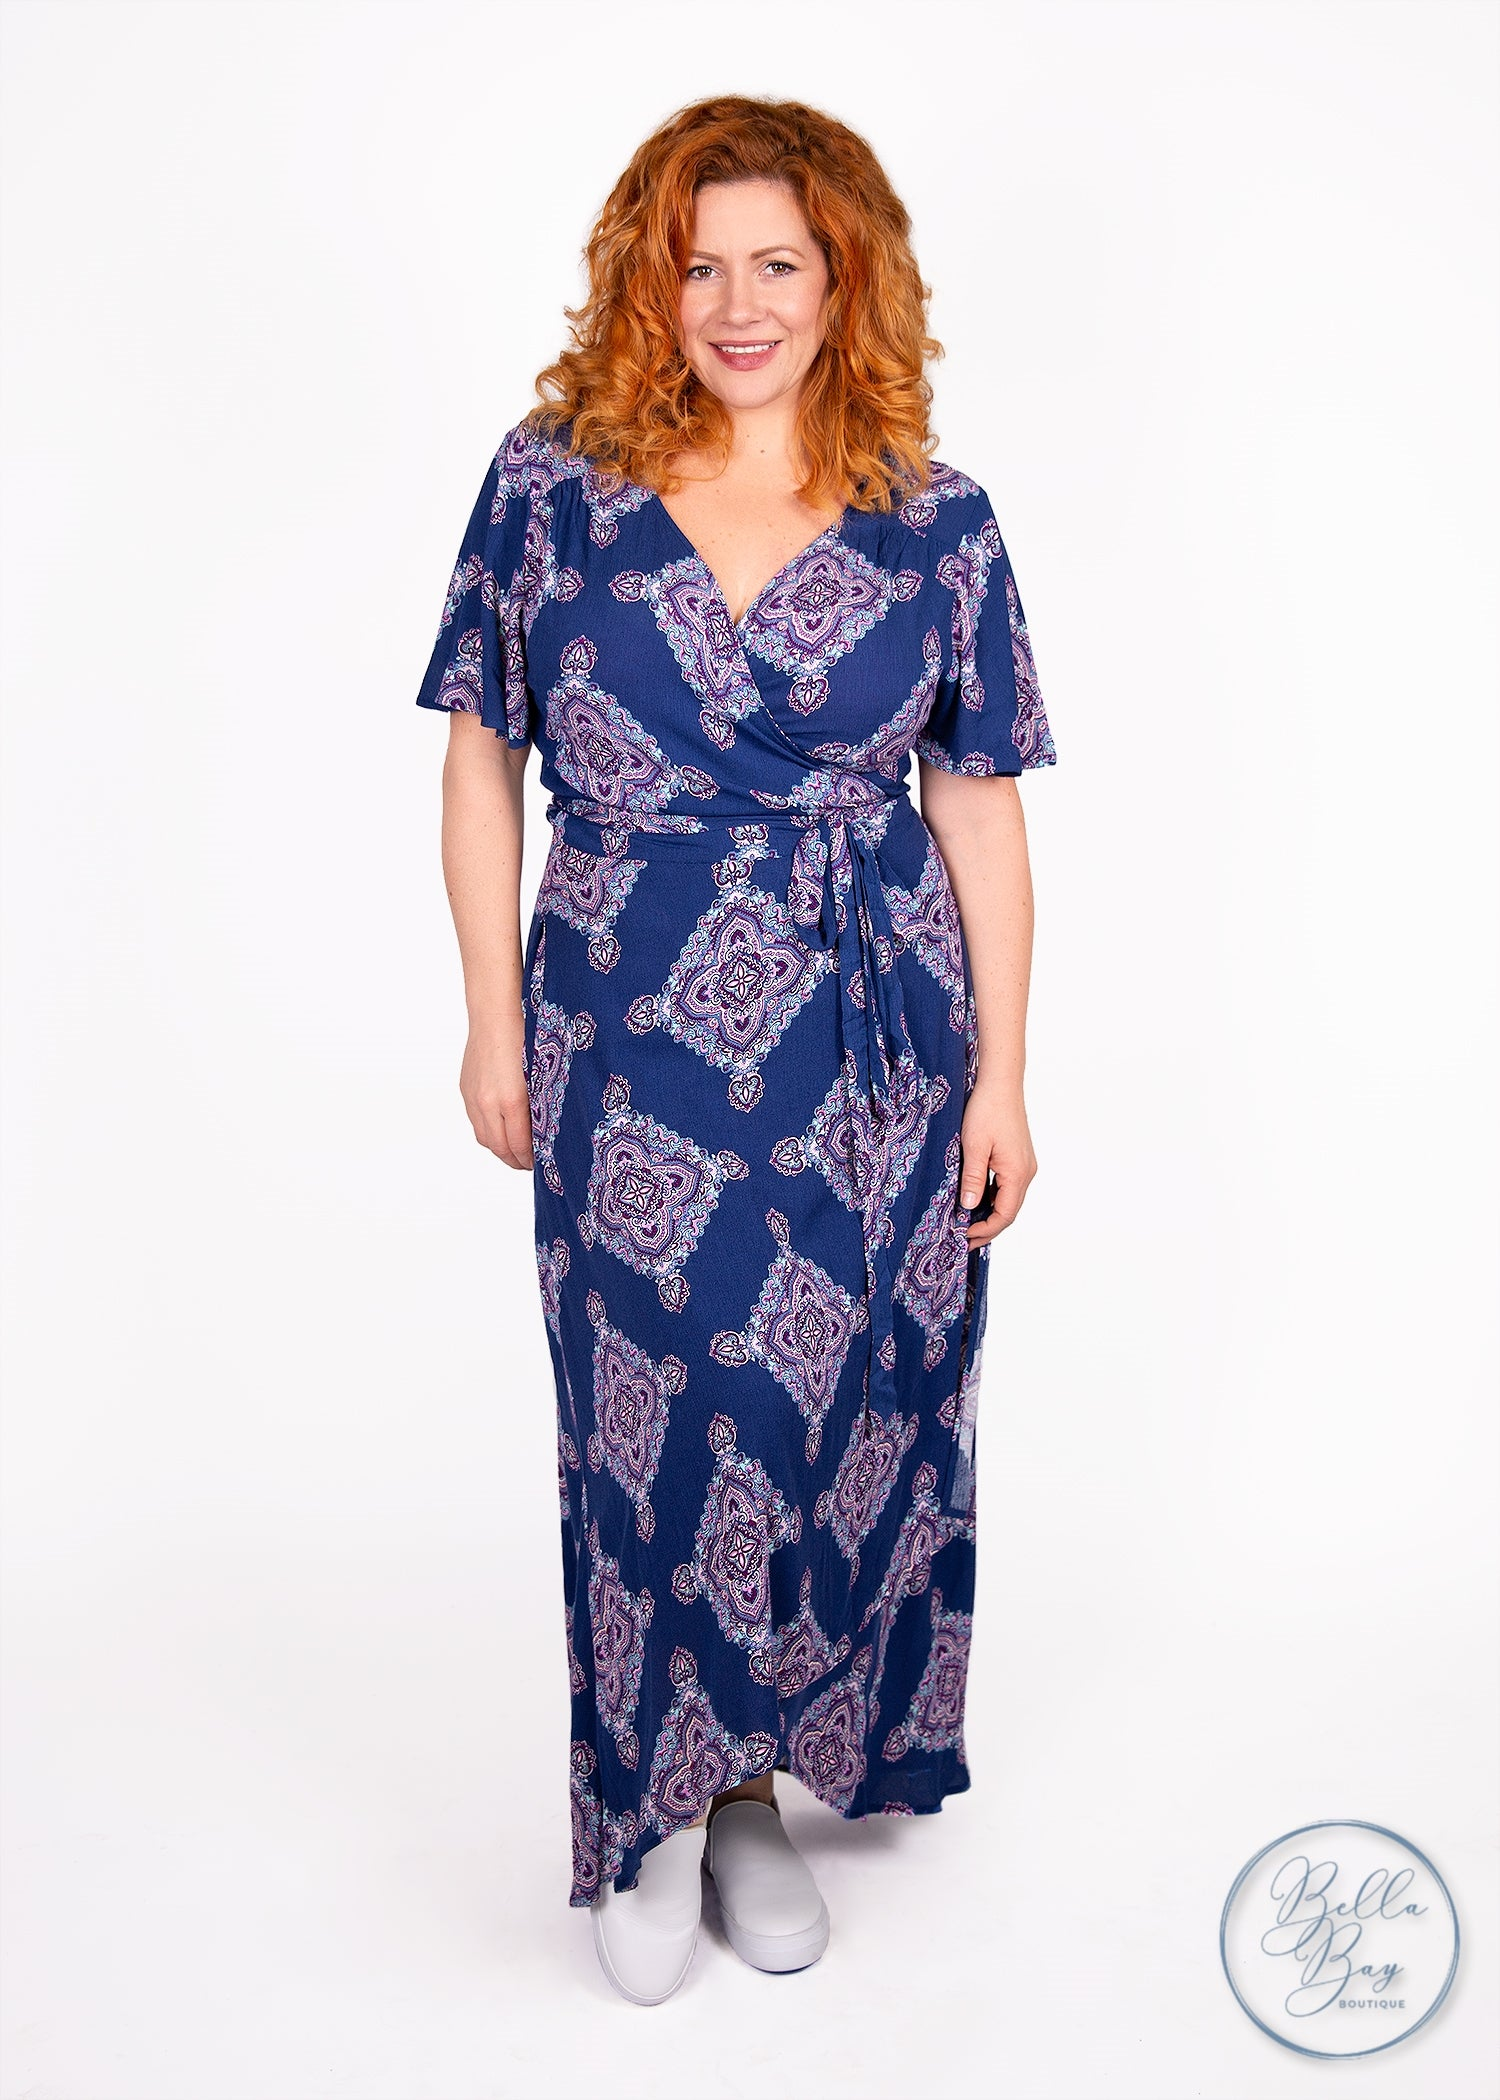 Paisley Raye Primrose Wrap Dress- Blue Medallion (XS) - Paisley Raye with Bella Bay Boutique, shop now at  https://shopbellabay.com/ or locally in Newport Oregon